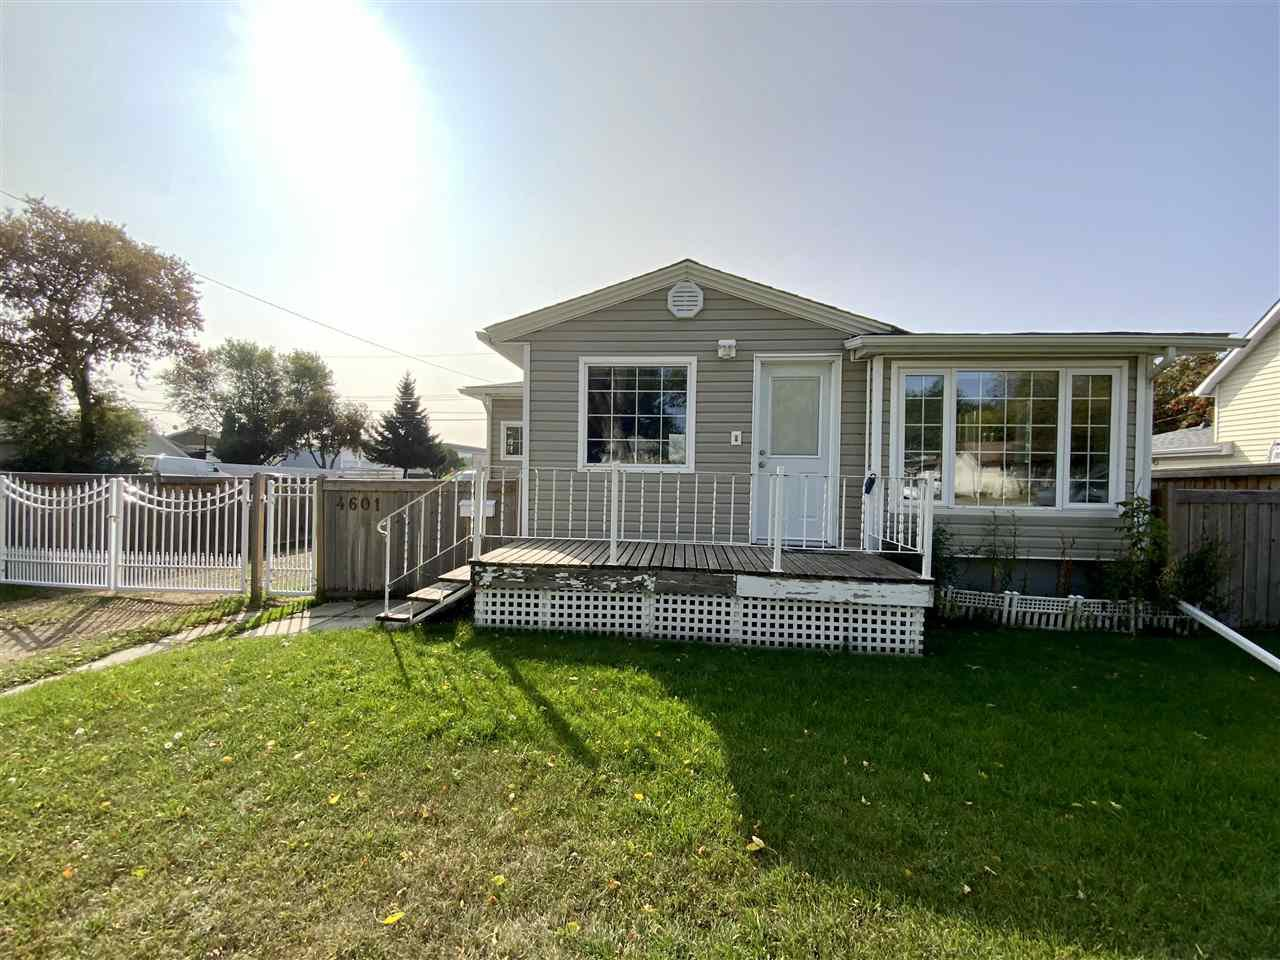 Main Photo: 4601 53 Avenue: Wetaskiwin House for sale : MLS®# E4189512